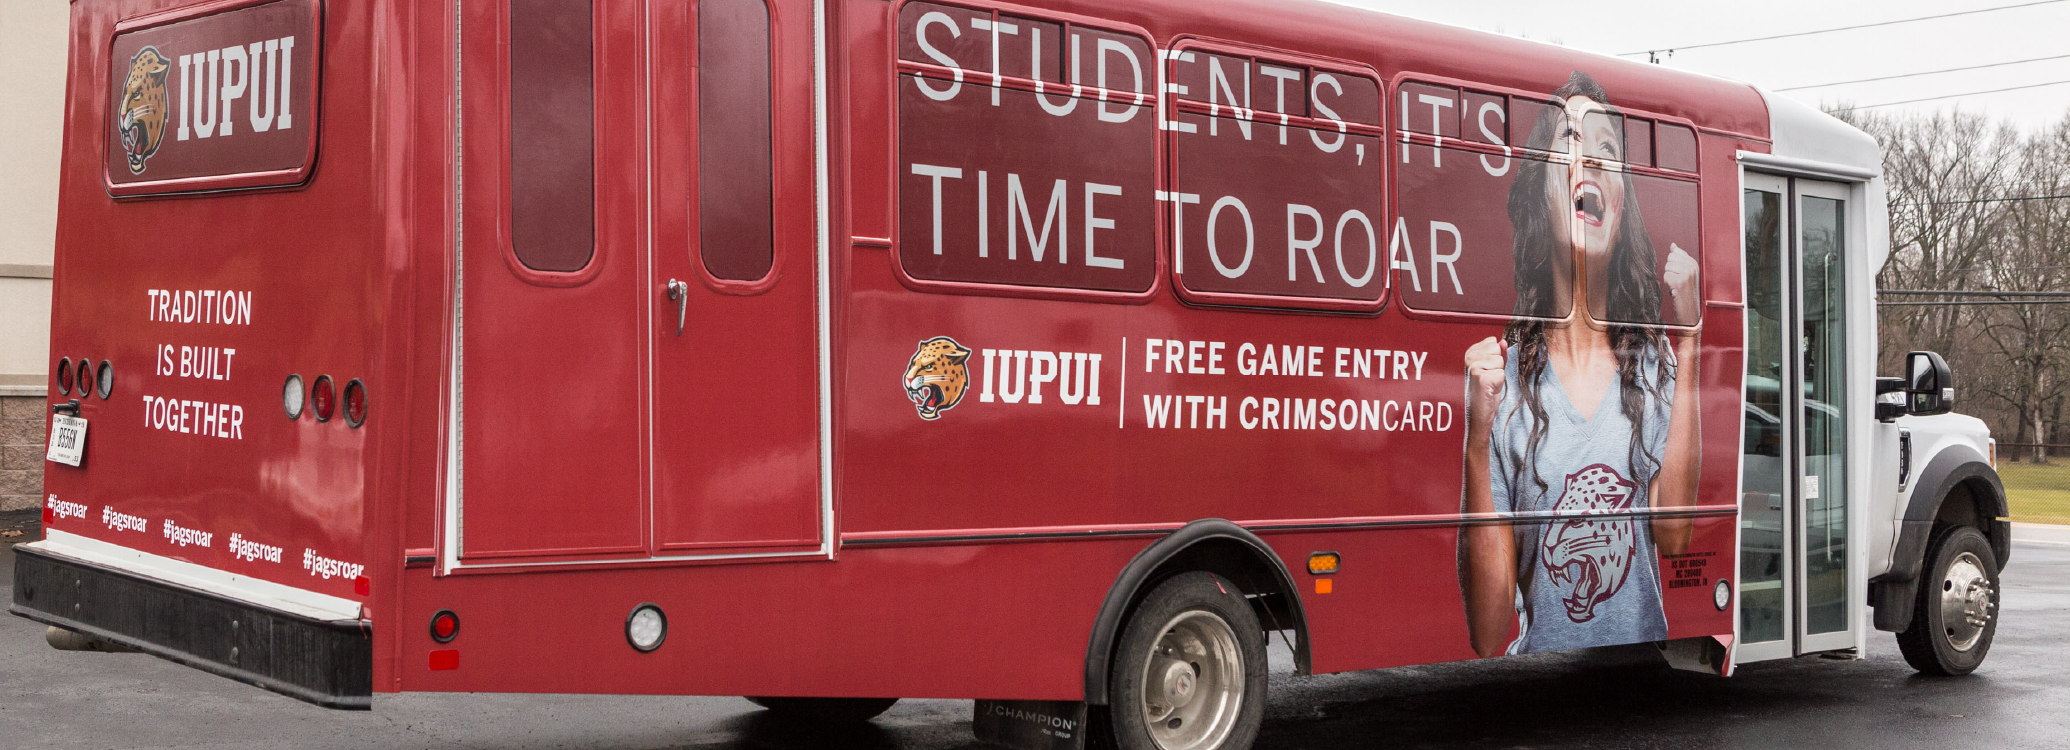 "Bus wrap of IUPUI fan and messaging that states ""Students, it's time to roar"""